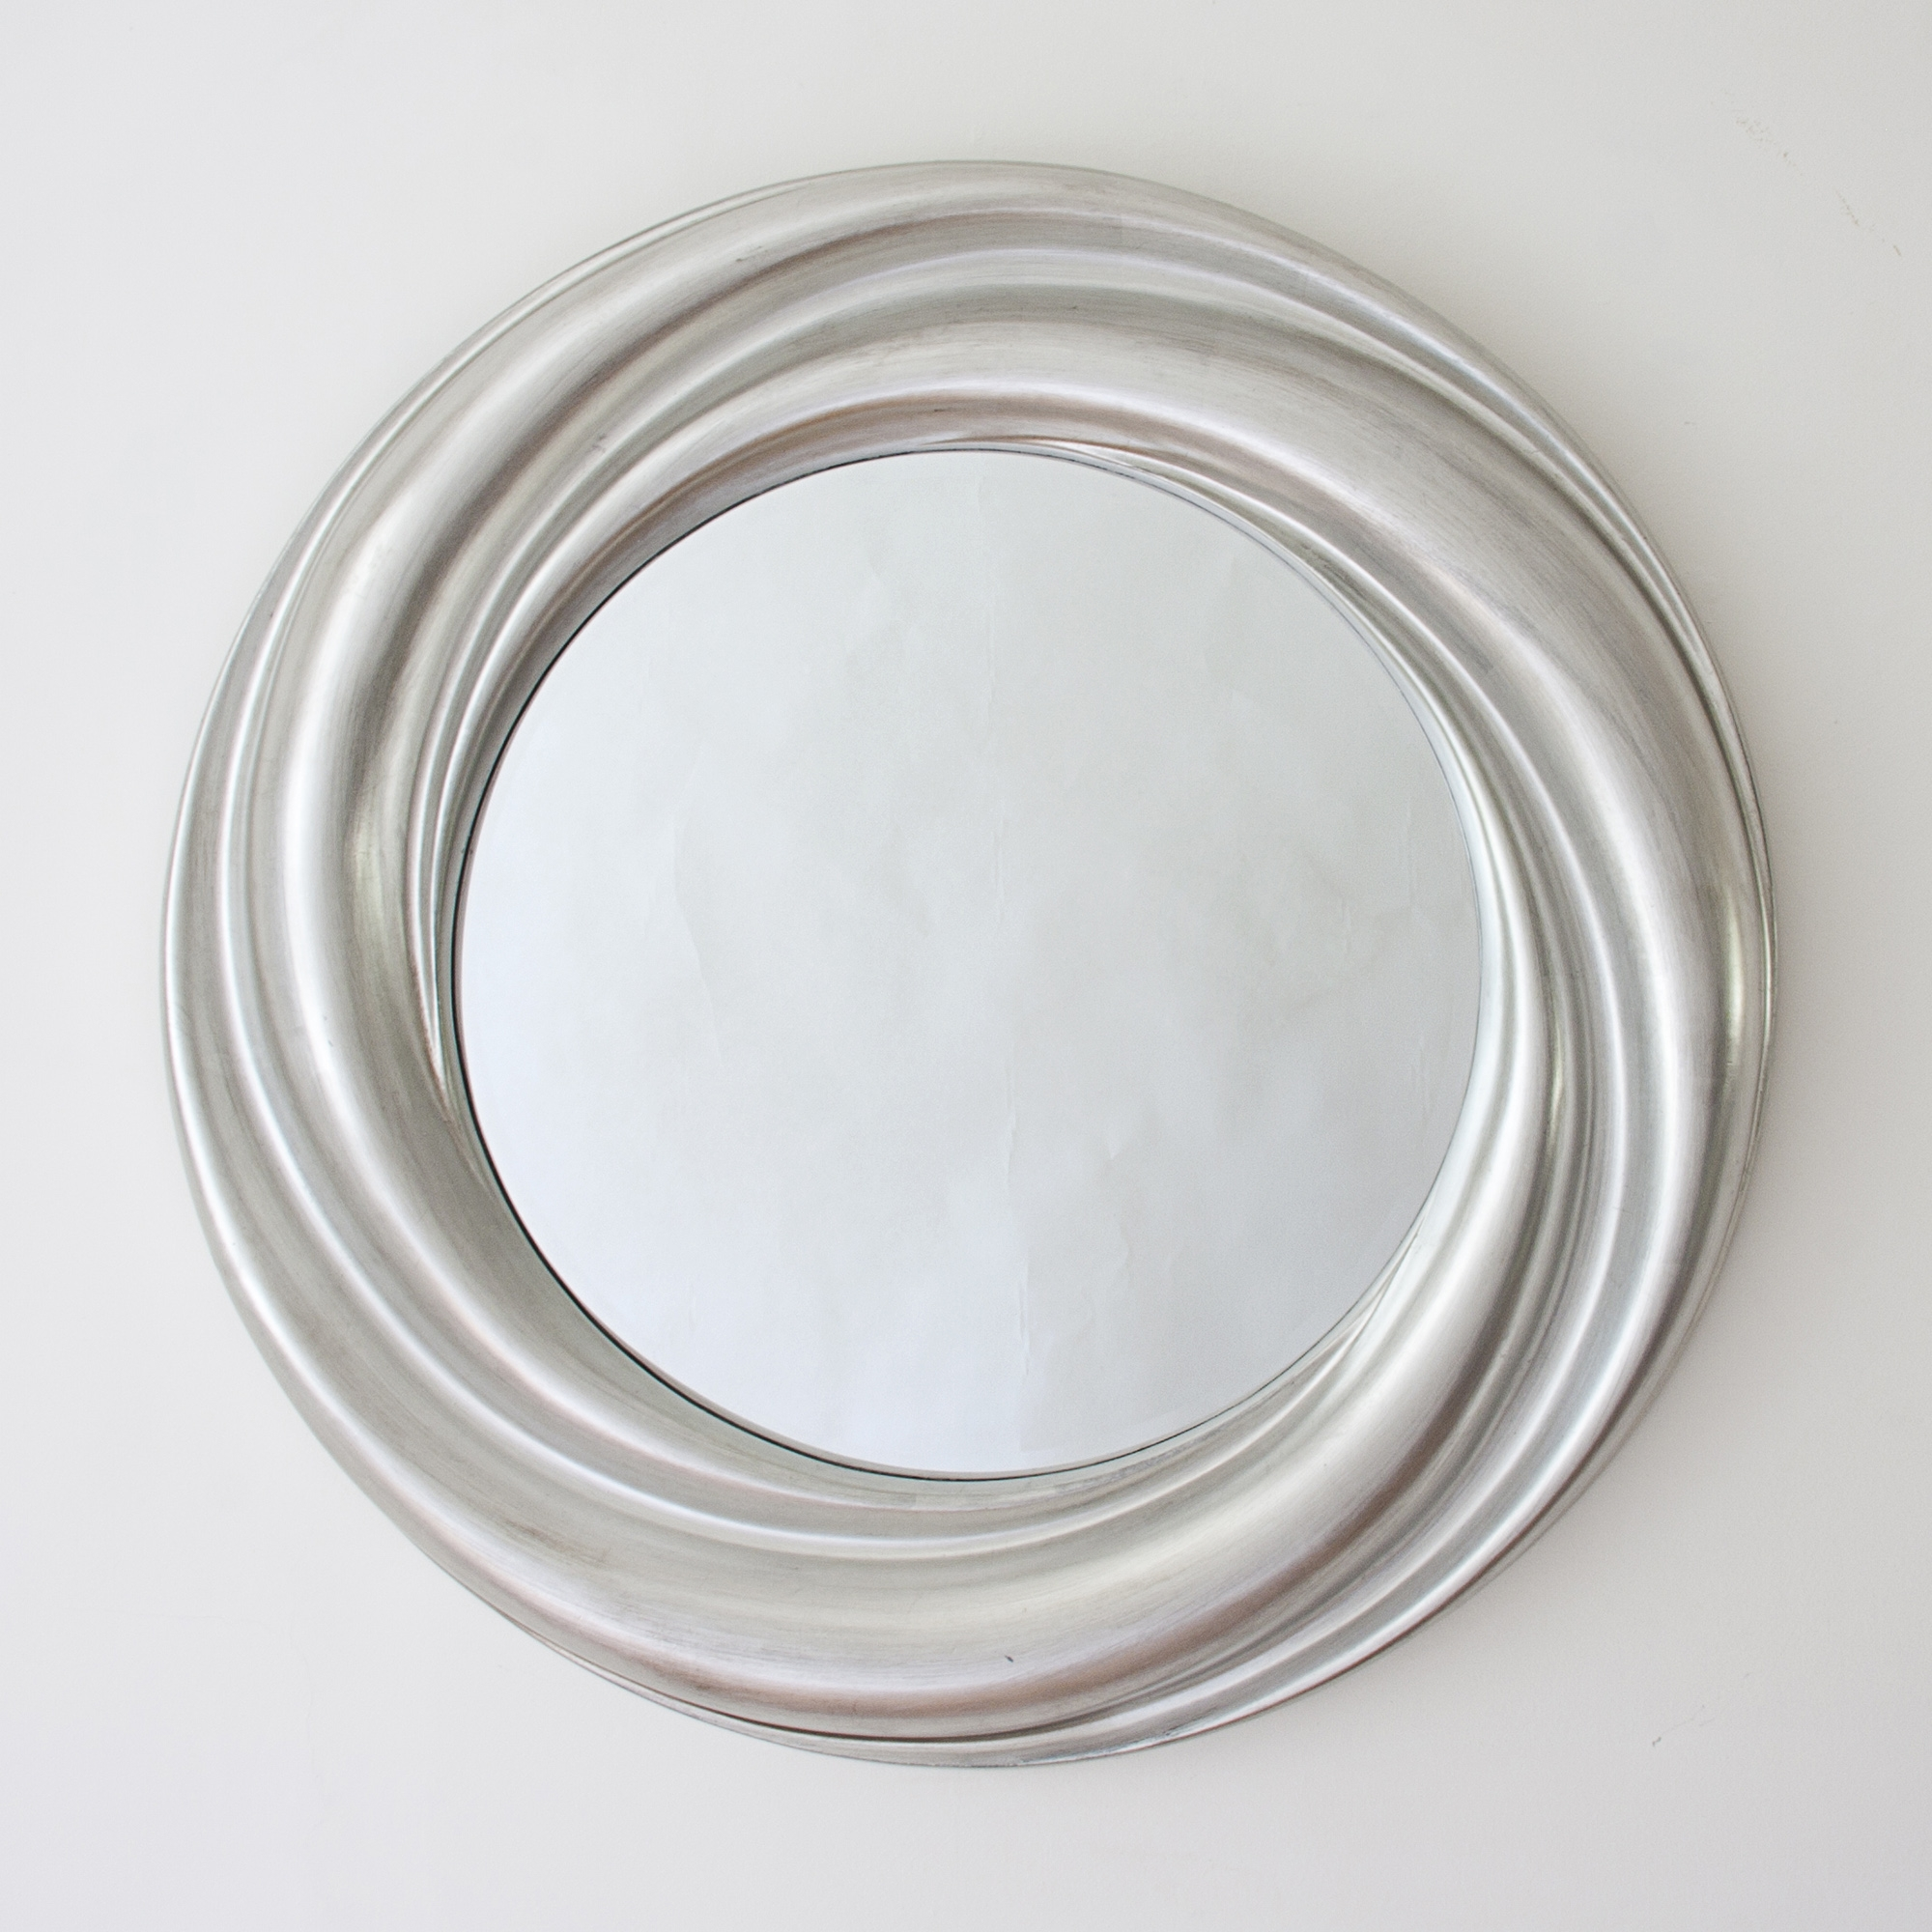 Bathroom Round Silver Mirror Pictures Decorations Inspiration In Round Silver Mirror (View 12 of 15)